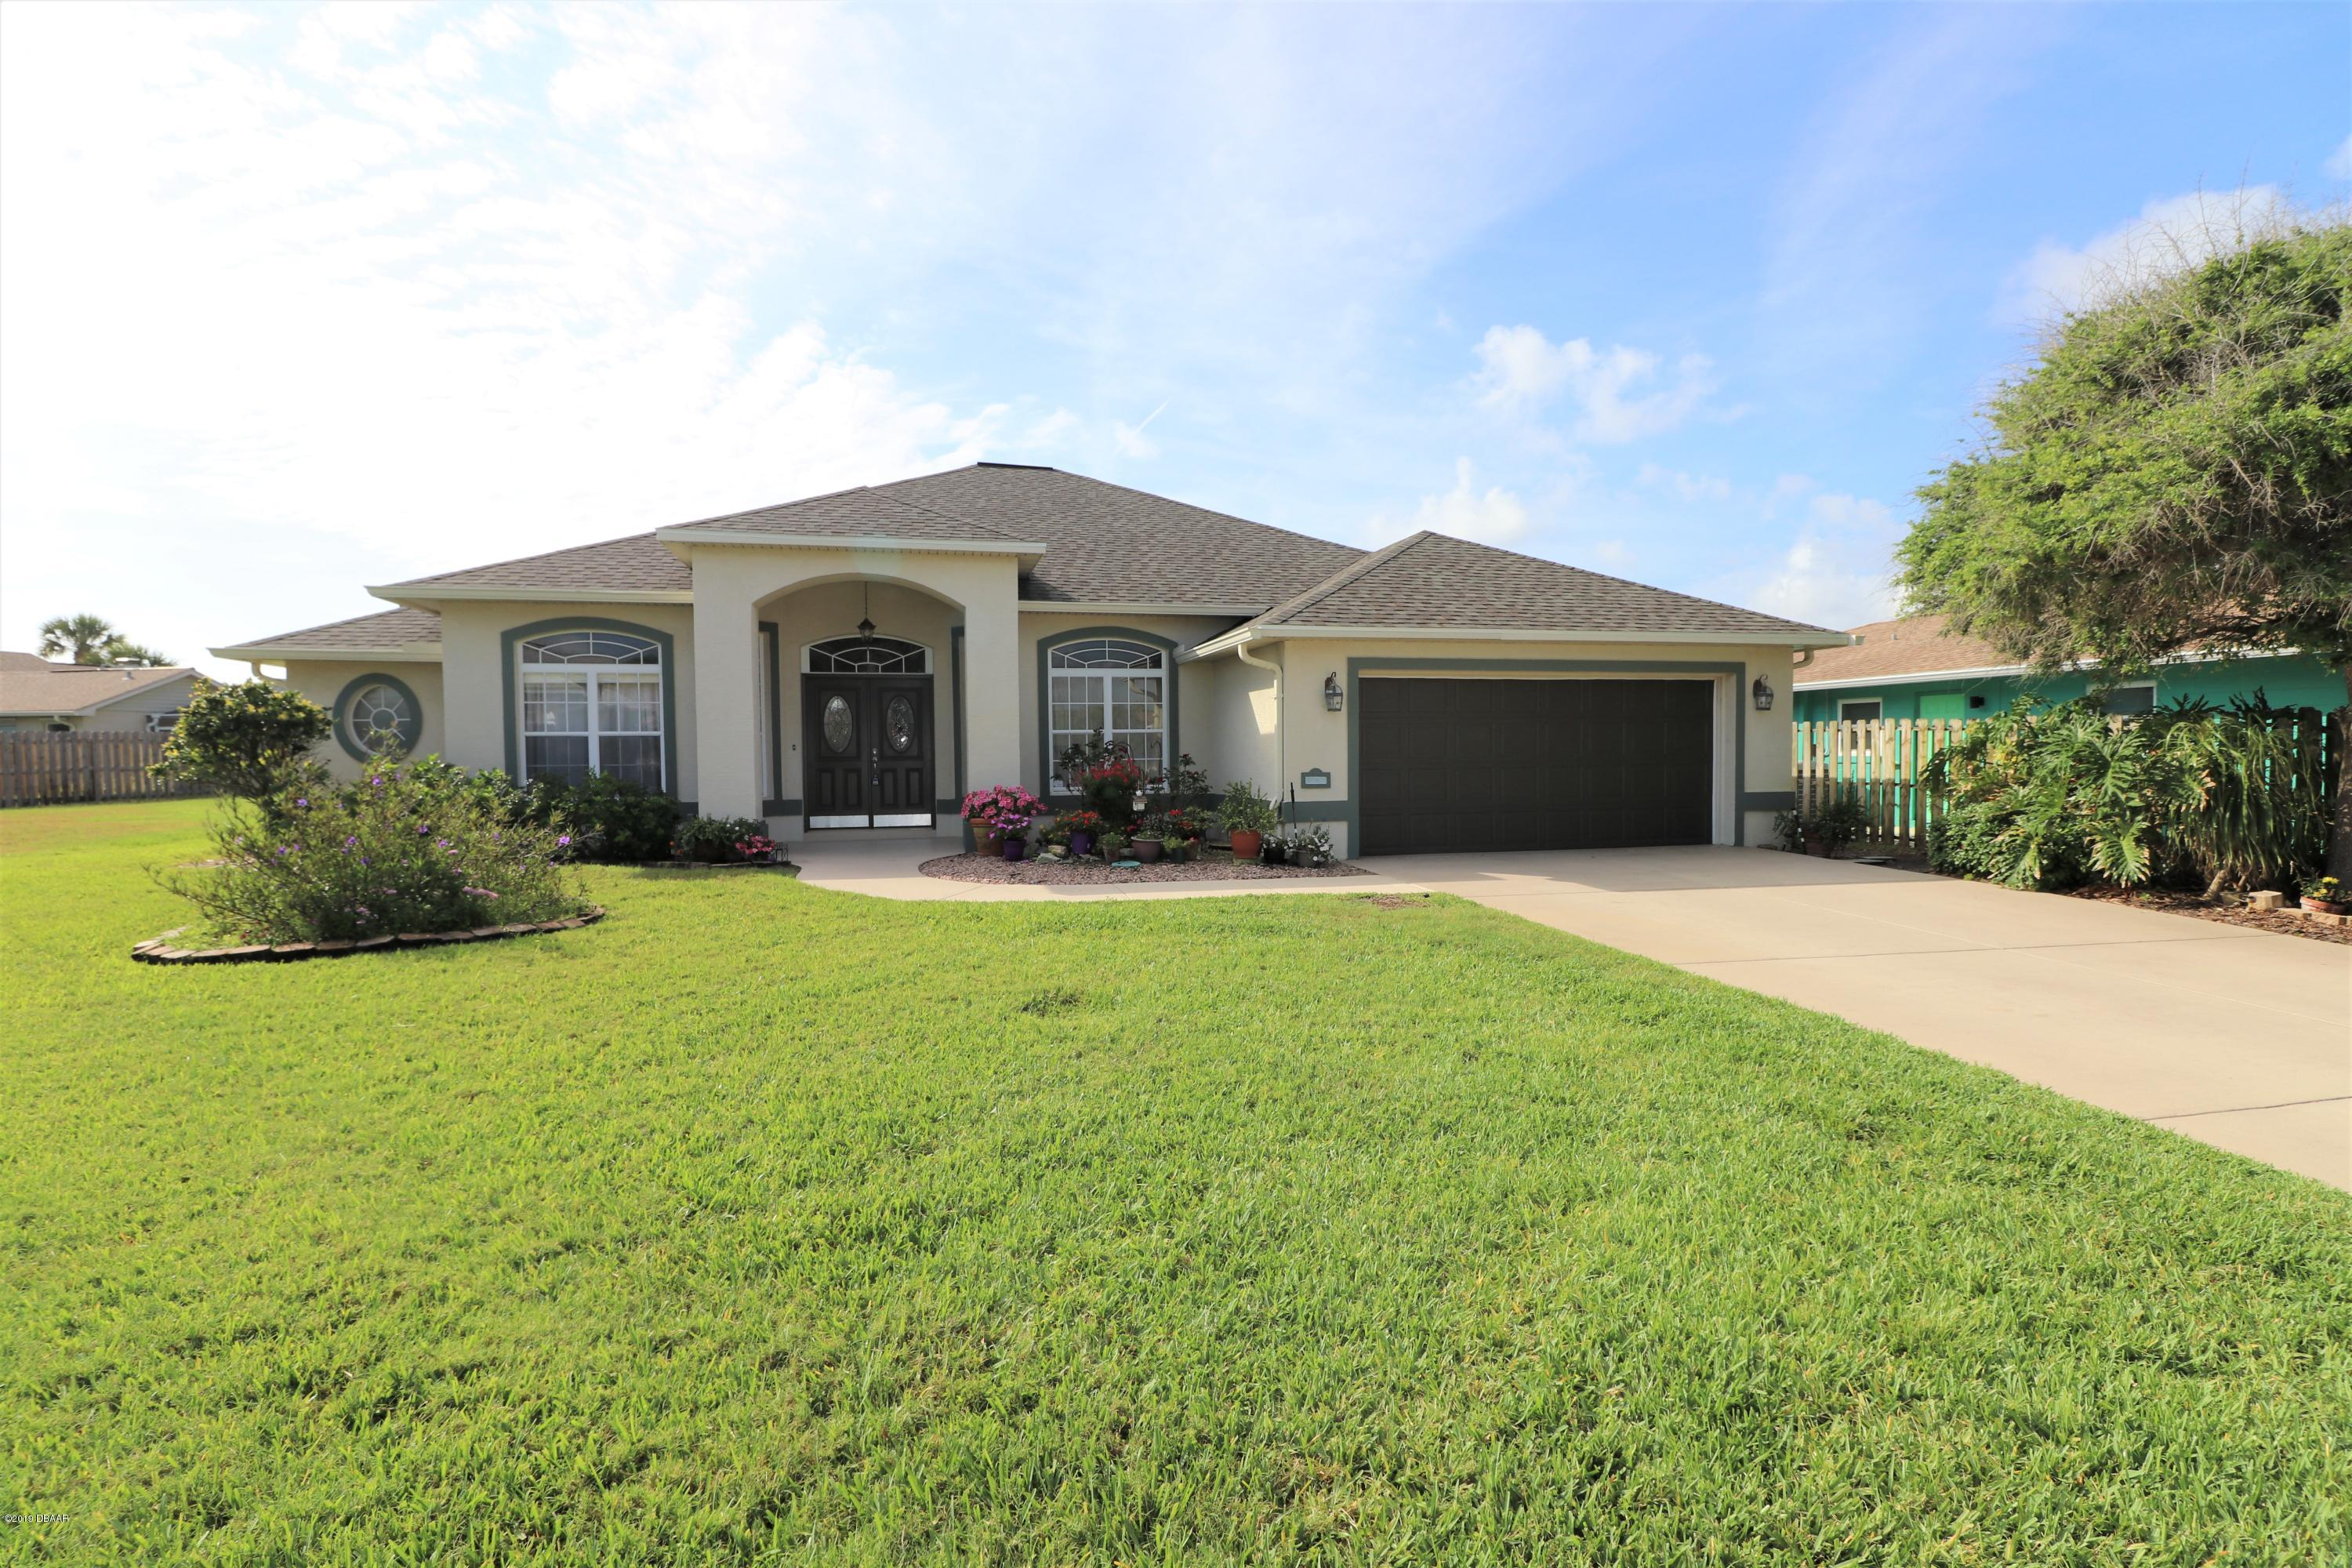 6 Sea Park Terrace, Ormond-By-The-Sea in Volusia County, FL 32176 Home for Sale